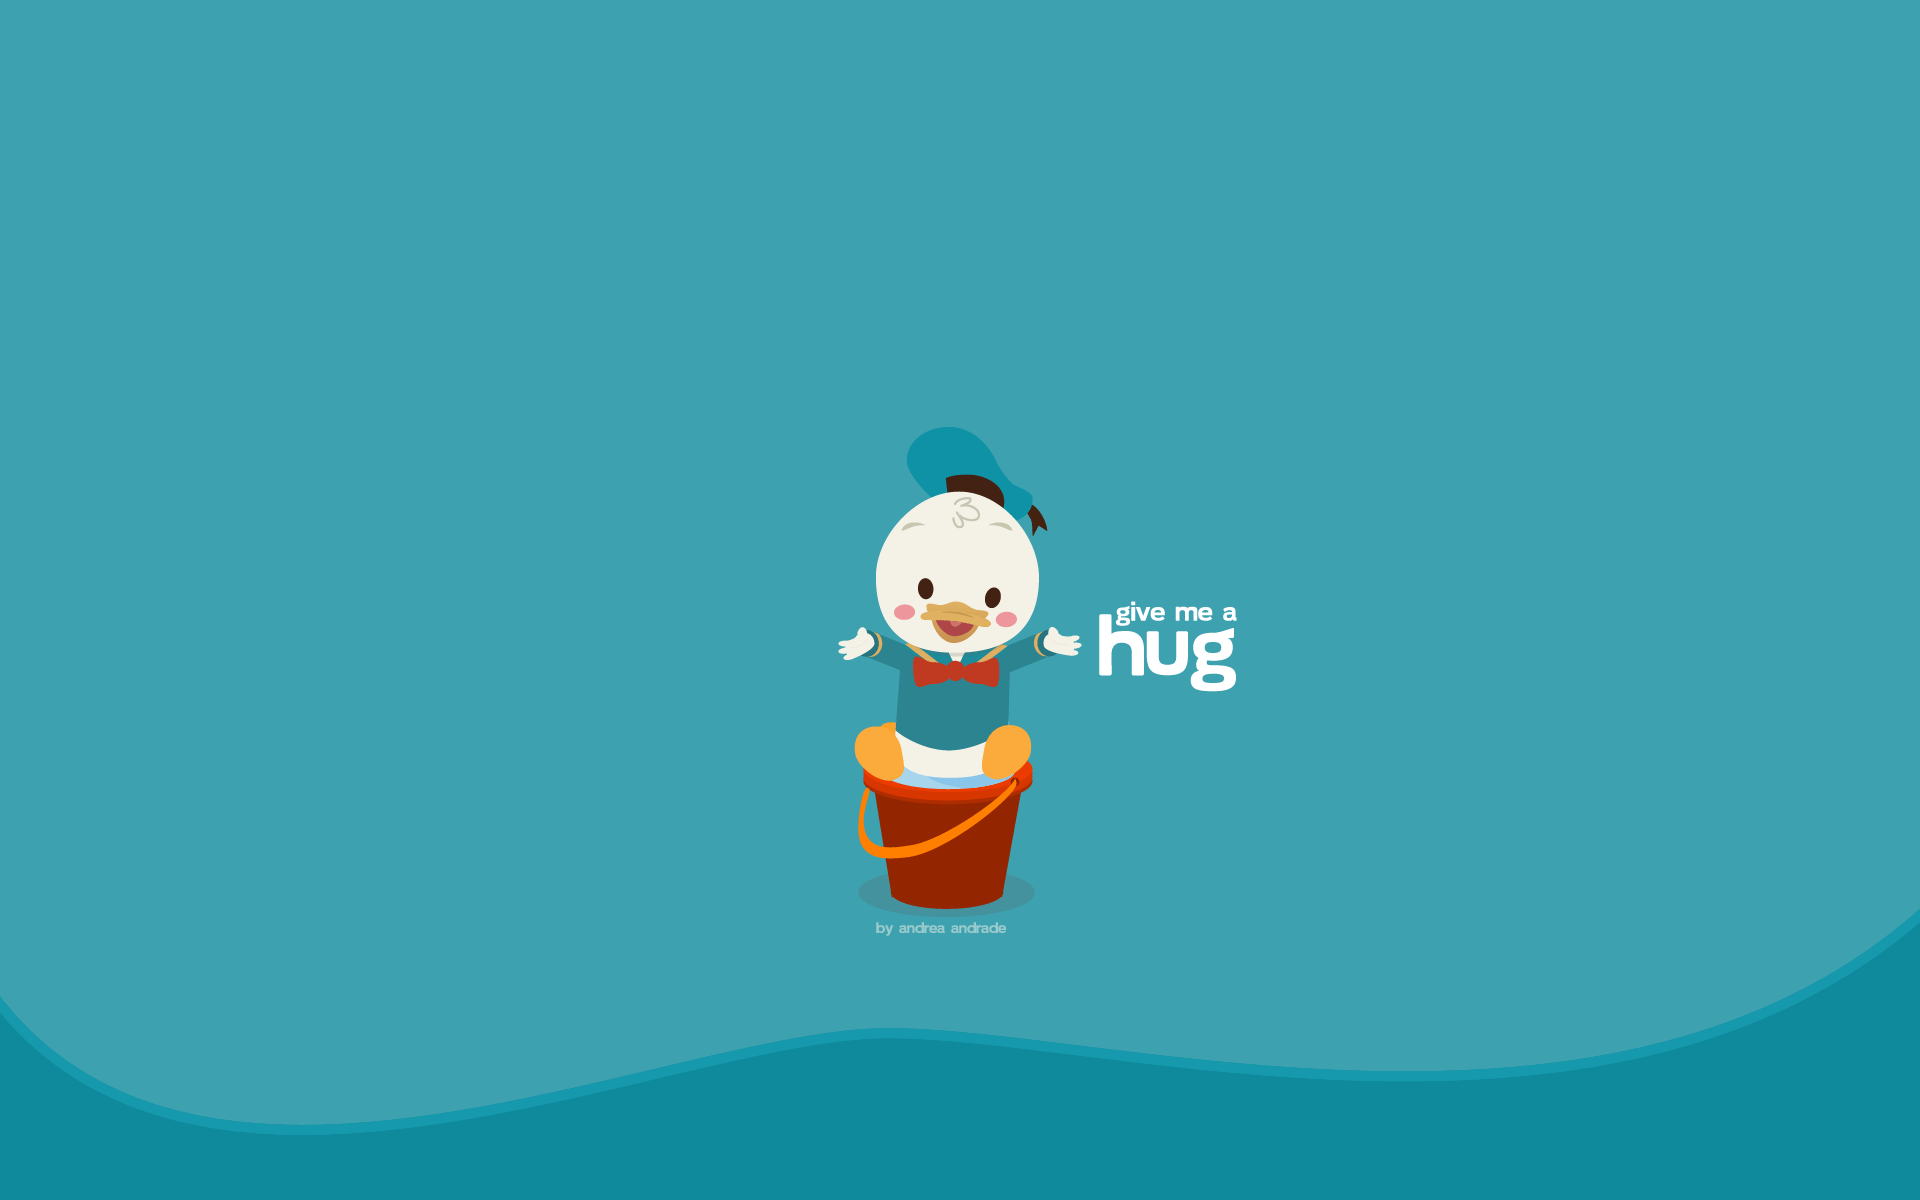 Cute Cartoon Wallpapers For Mobile Hd Donald Duck Wallpapers For Desktop Pixelstalk Net